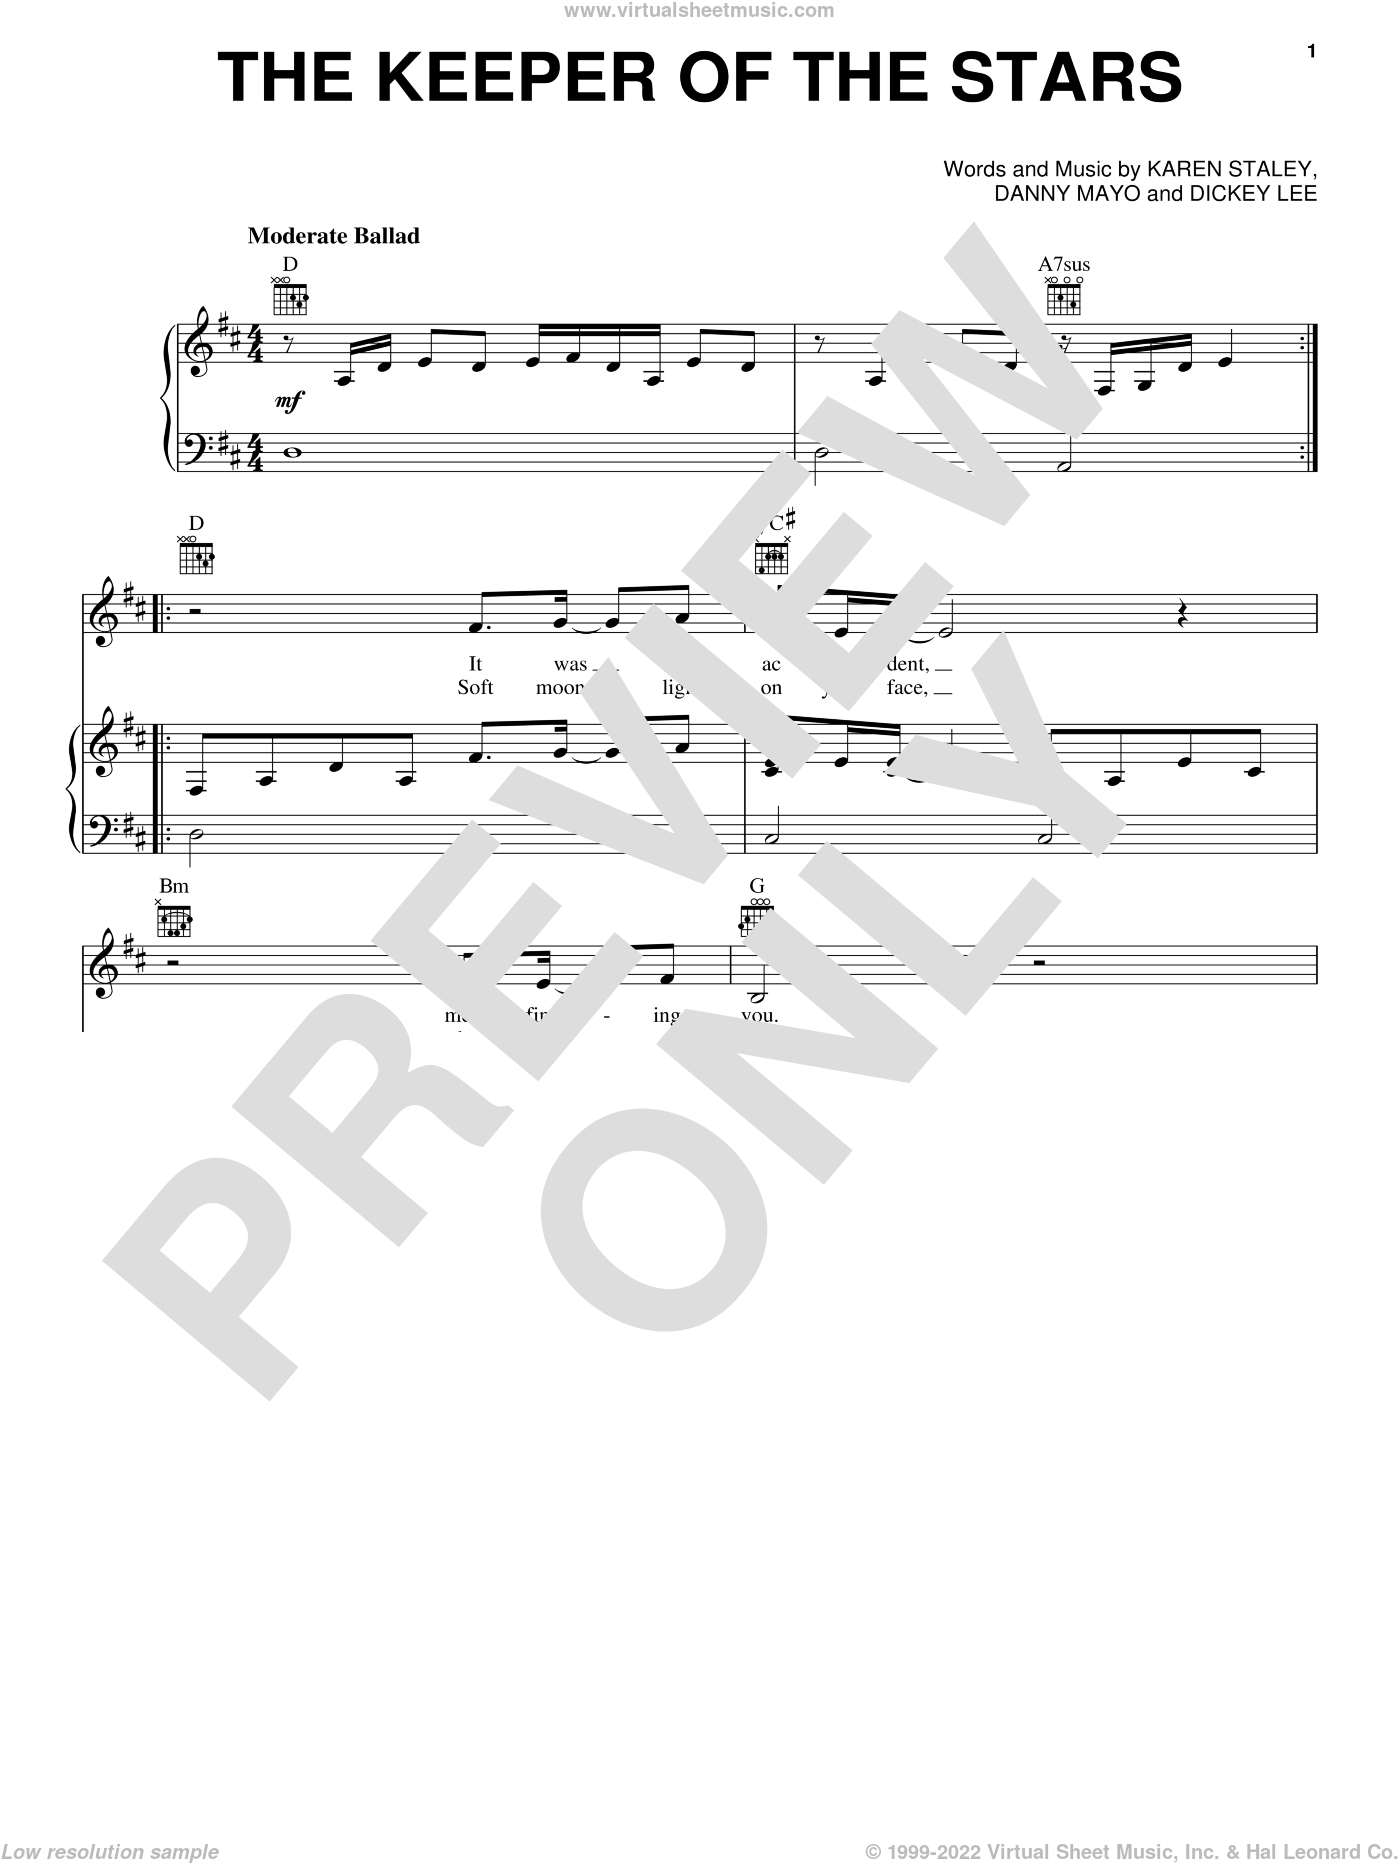 The Keeper Of The Stars sheet music for voice, piano or guitar by Tracy Byrd, Danny Mayo, Dickey Lee and Karen Staley, wedding score, intermediate skill level